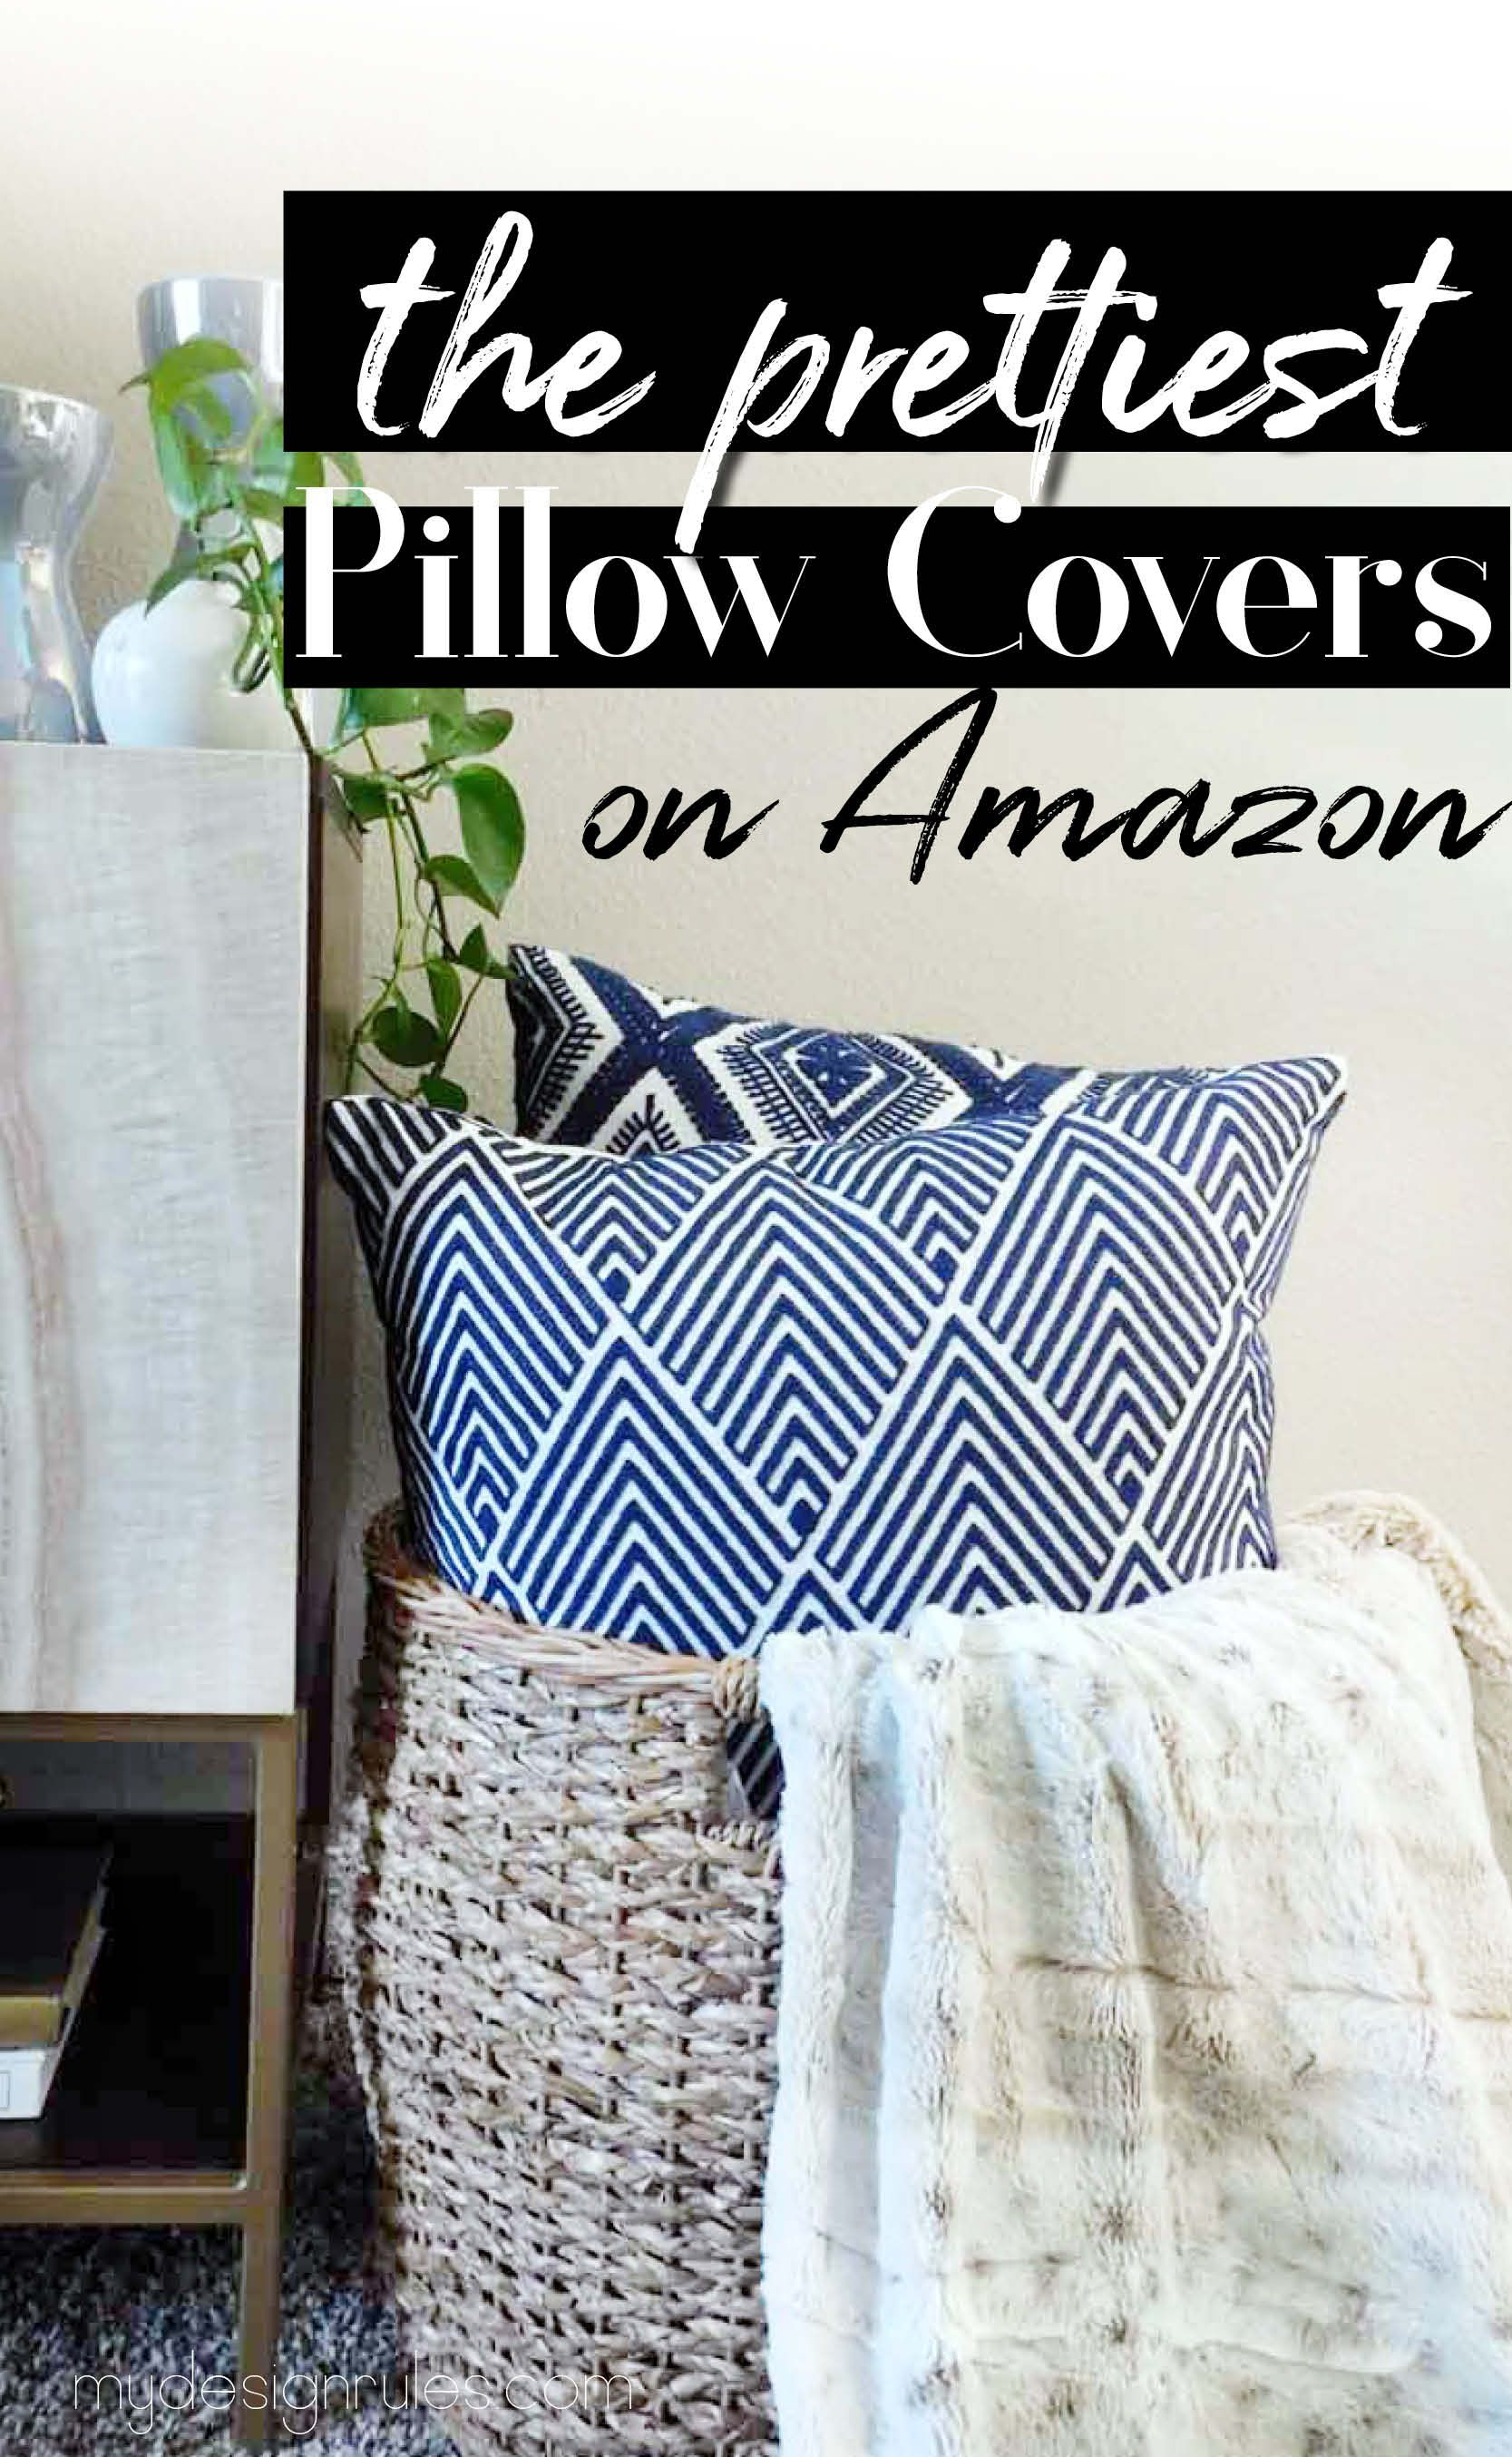 Best Place To Find Inexpensive Pillow Covers In 2020 Pillows Buy Pillow Covers Inexpensive Pillows